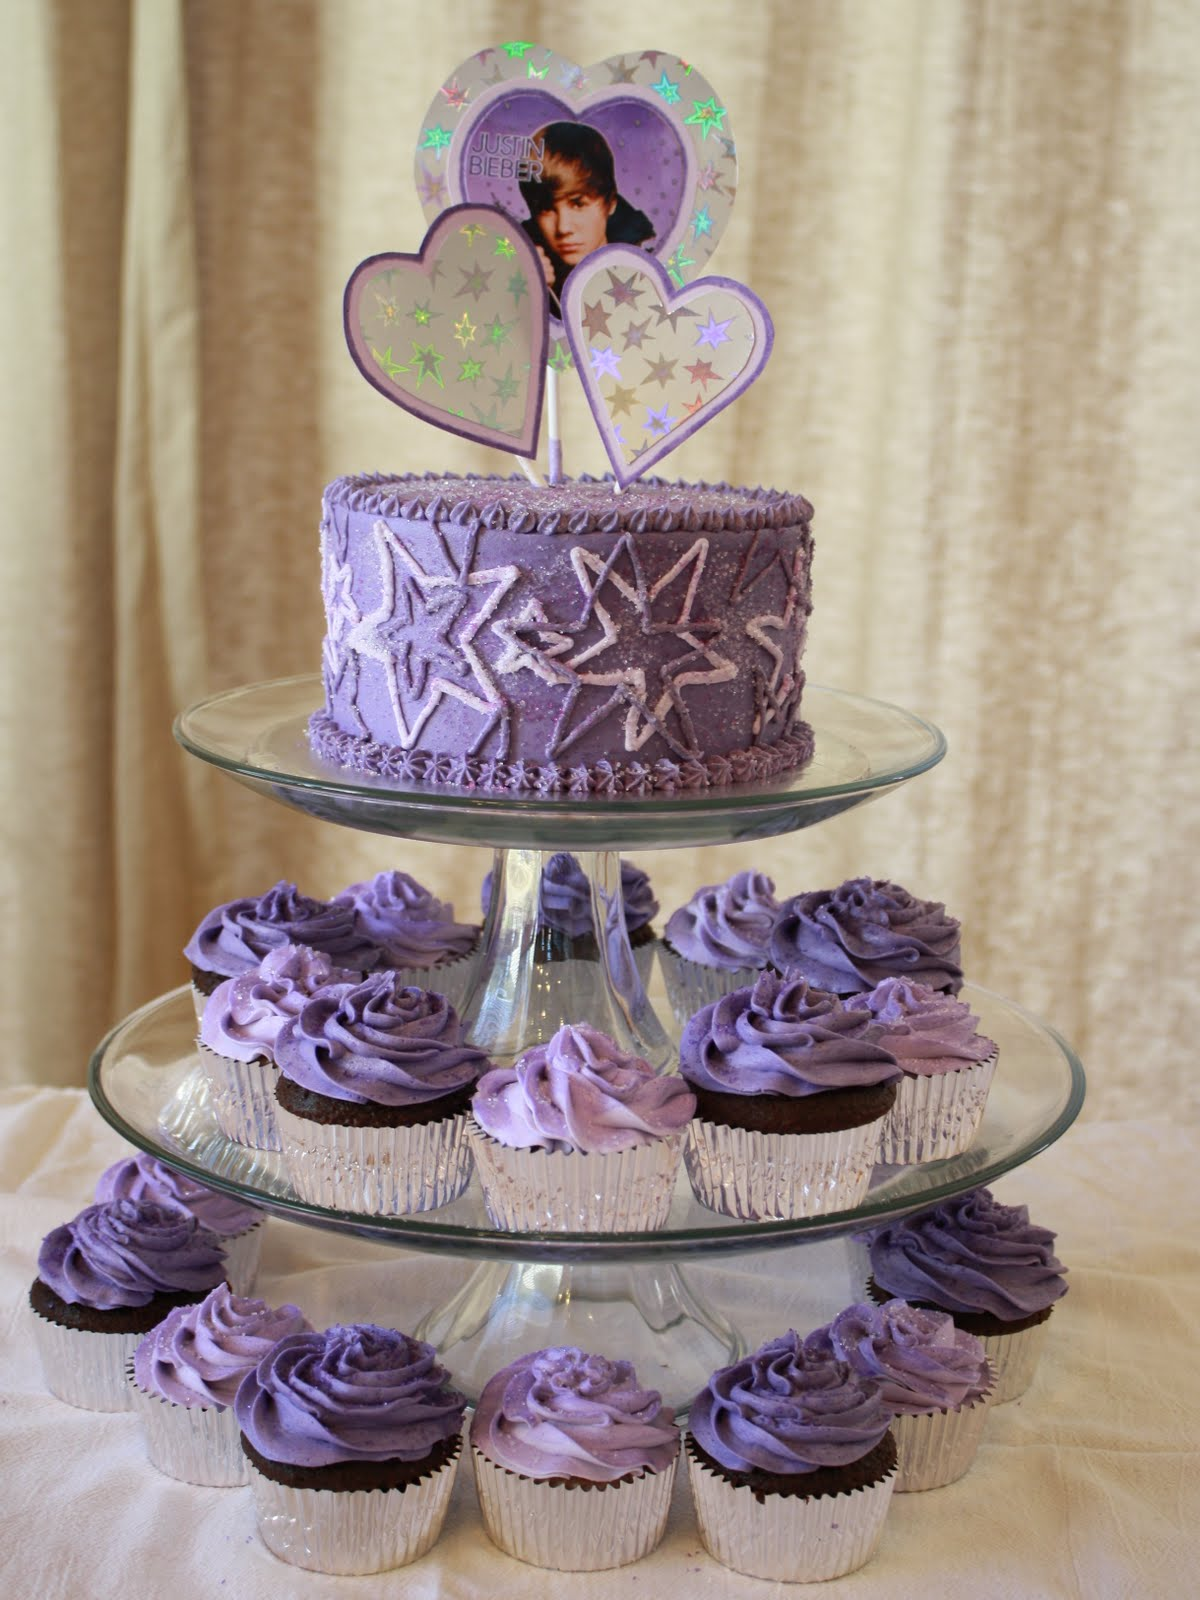 Party Cakes Justin Bieber Cake